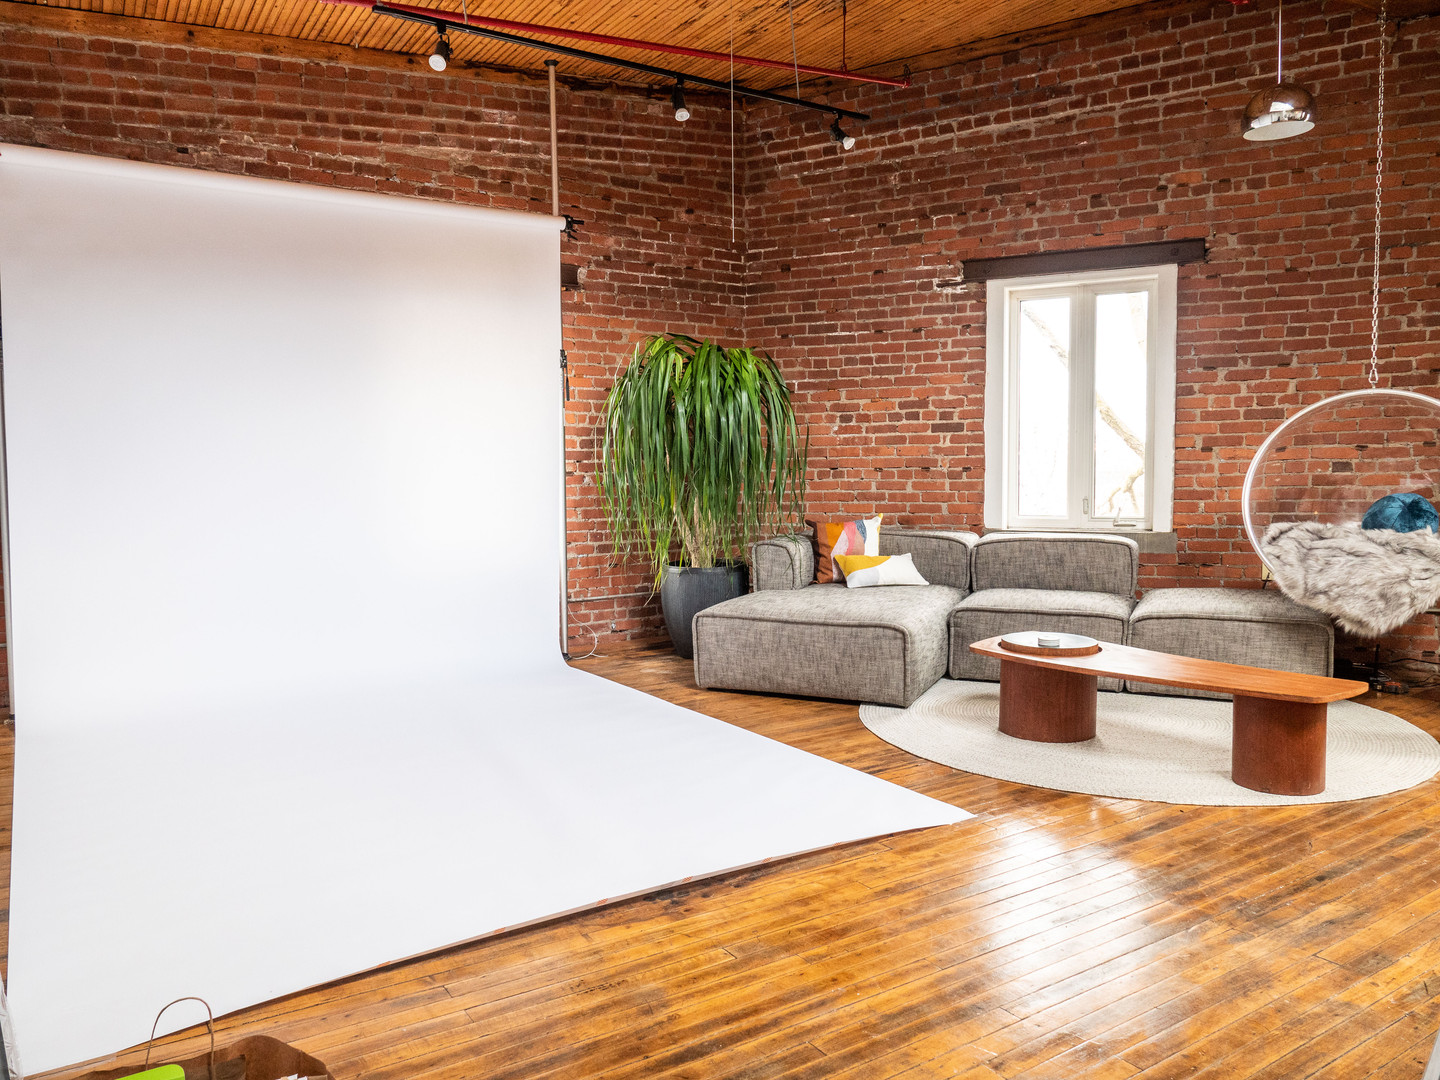 skylight loft studio-1844438.jpg